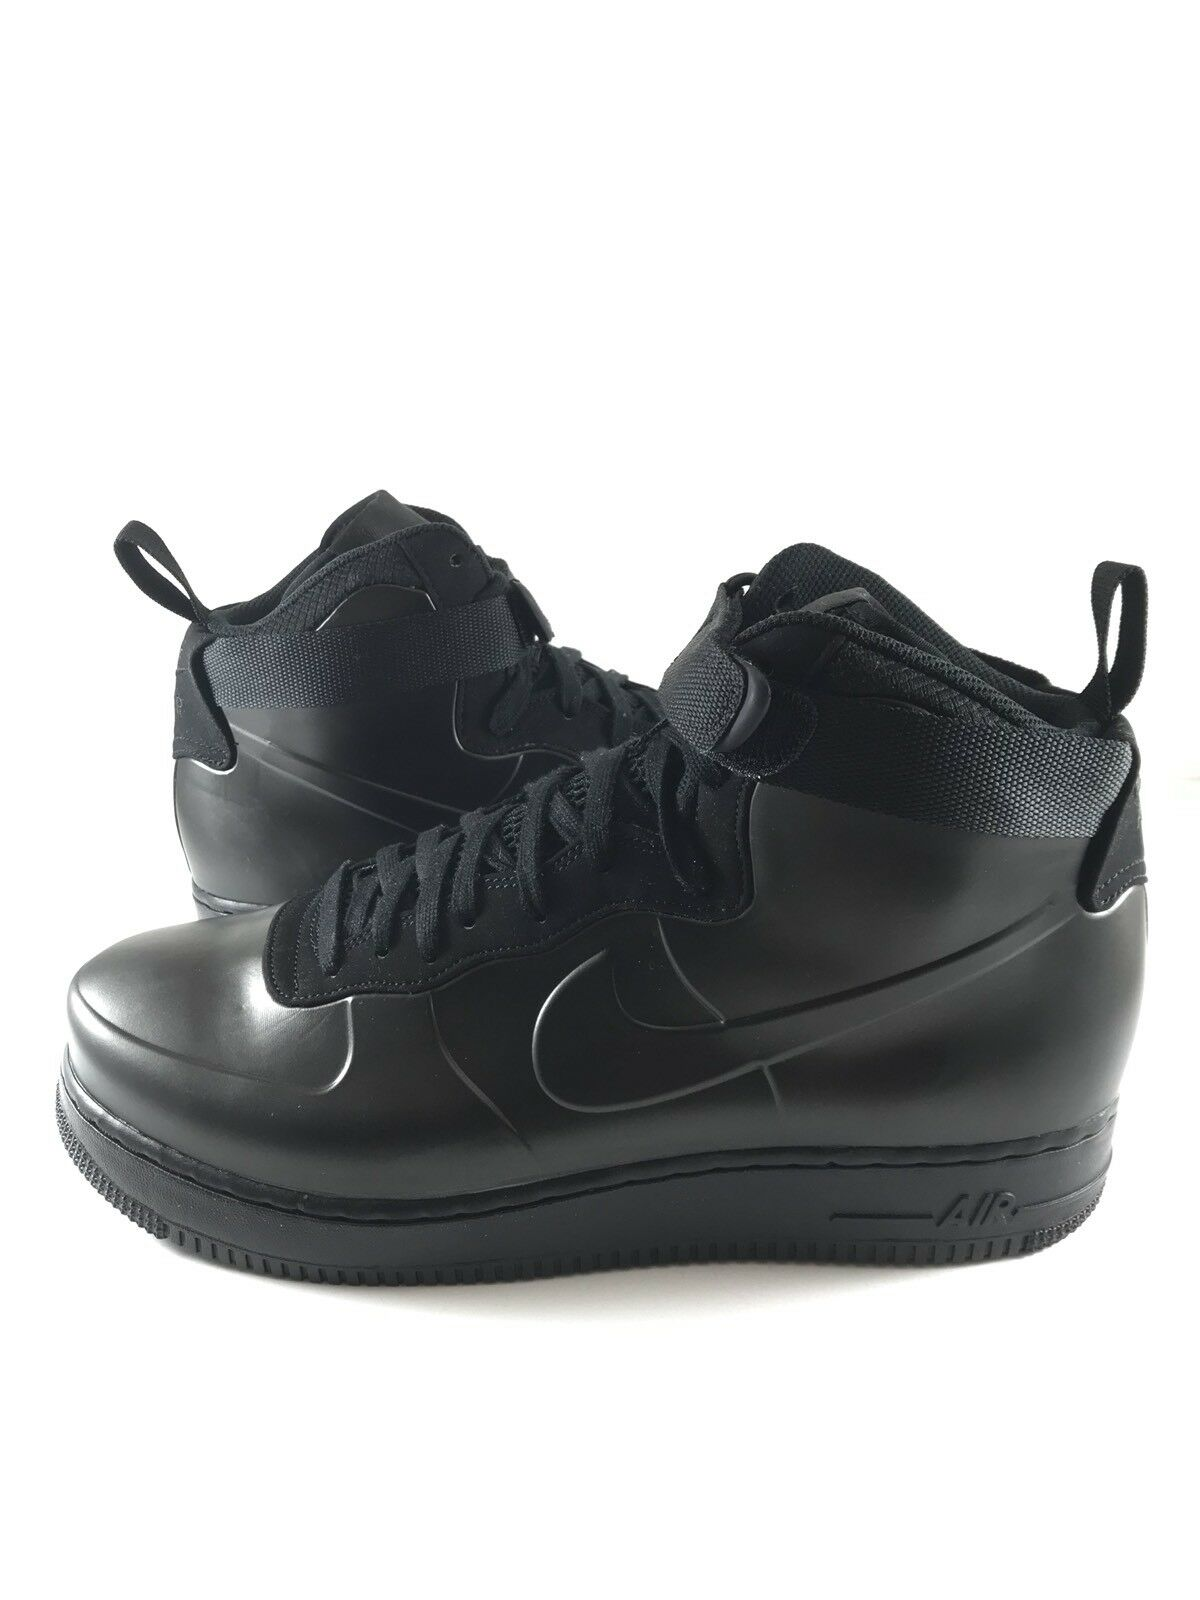 Nike air force 1 foamposite cupsole 001 triple schwarz ah6771 001 cupsole mens 11,5 af1 d7d9b7